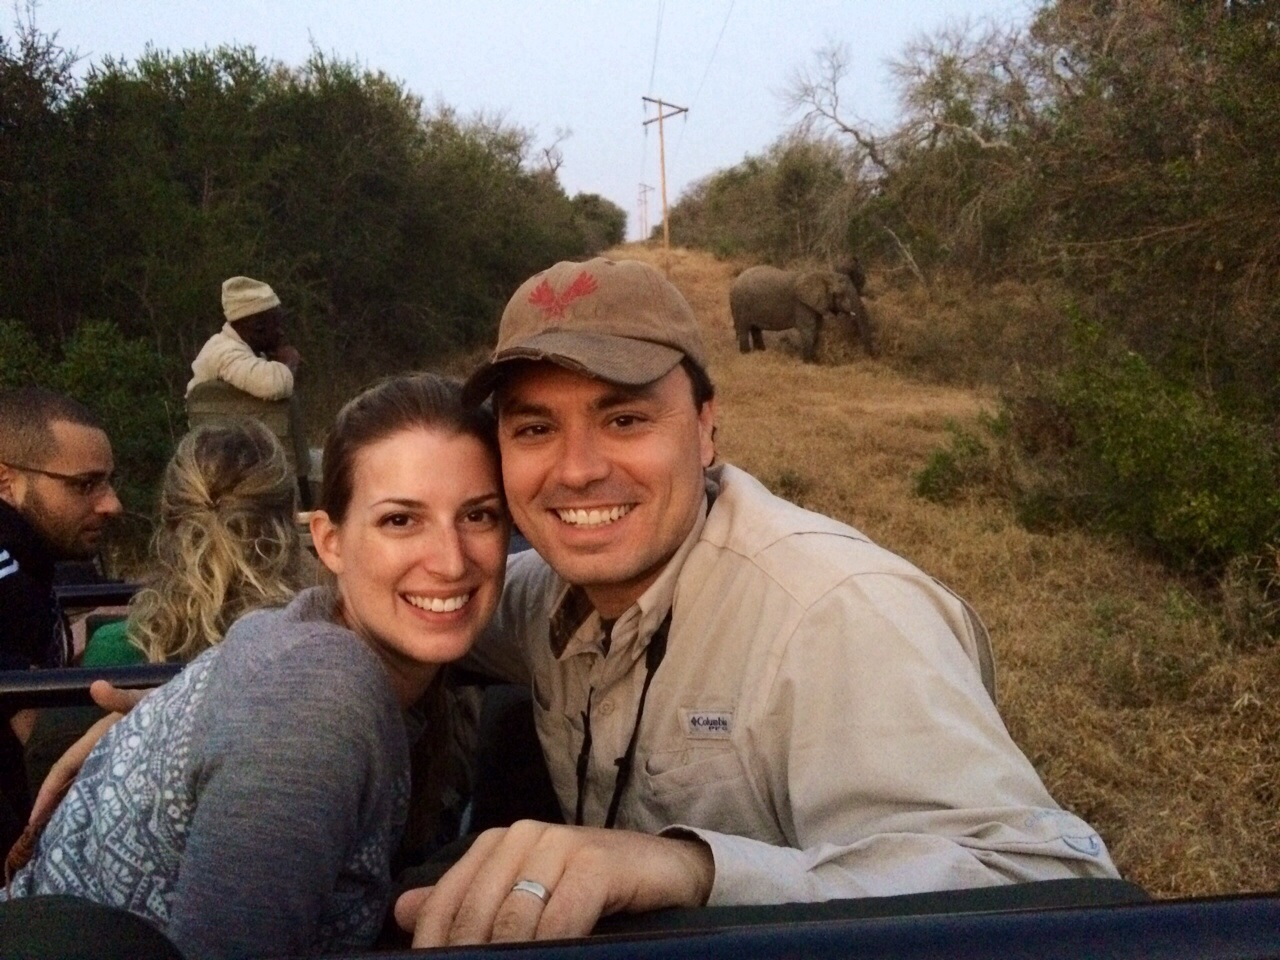 just taking a selfie with some elephants.